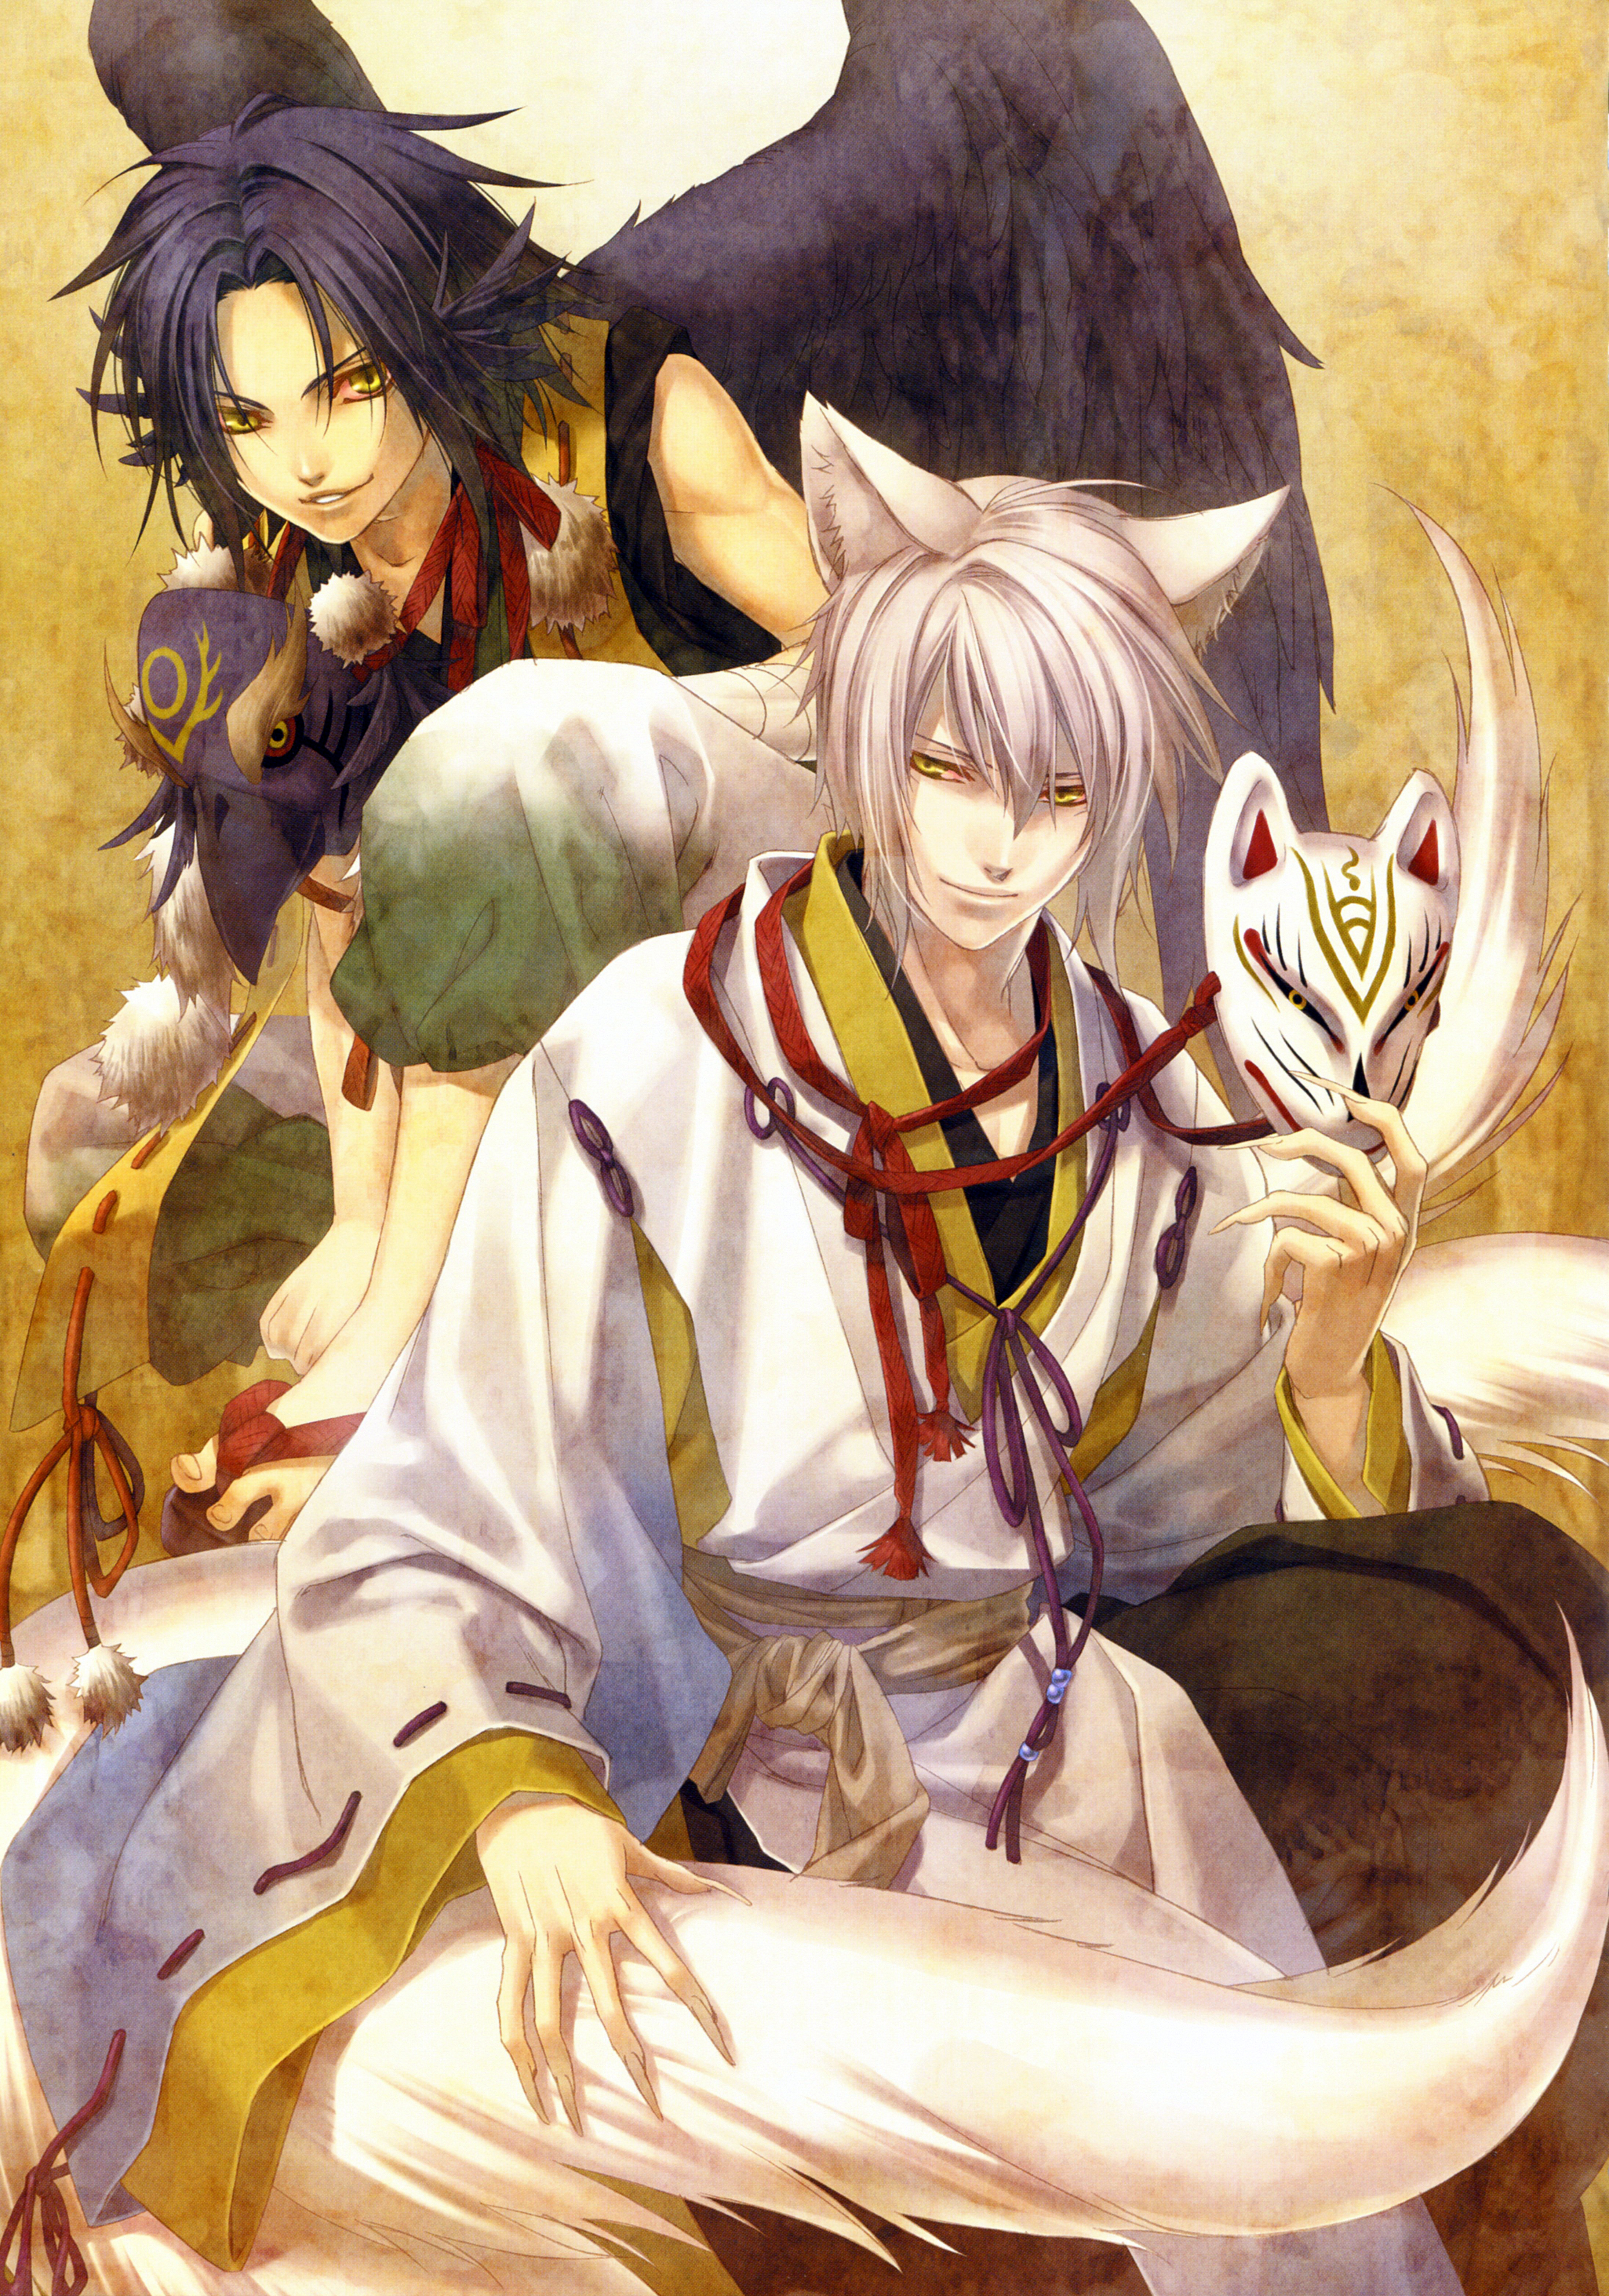 Scarlet fragments · download hiiro no kakera image